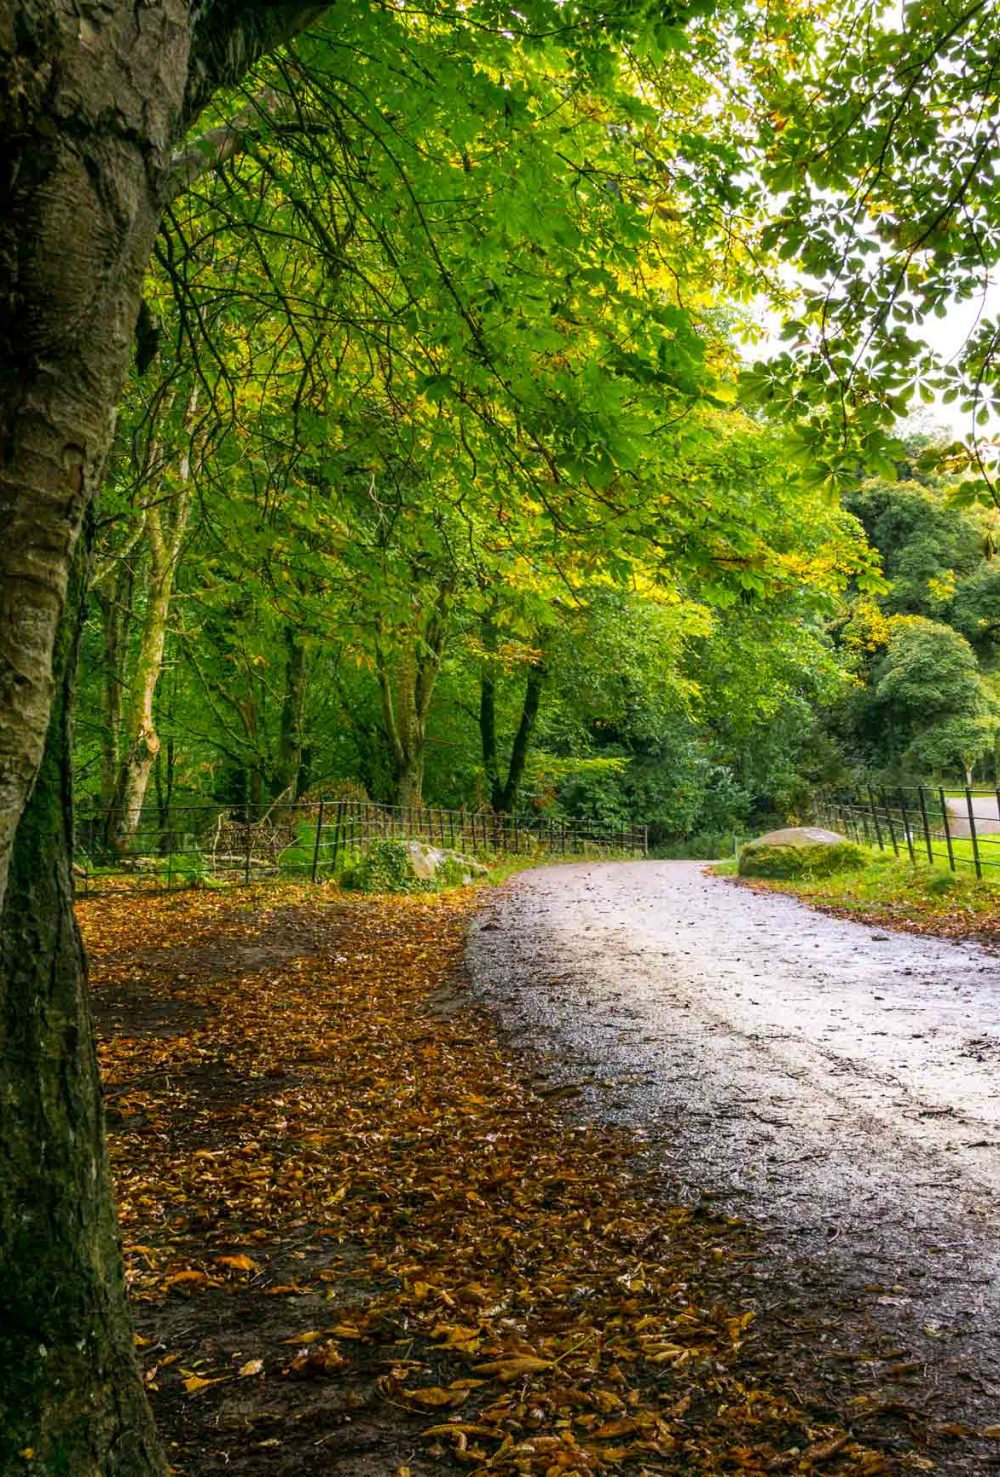 Killarney is stunning in the fall. Killarney National Park features storybook pathways.